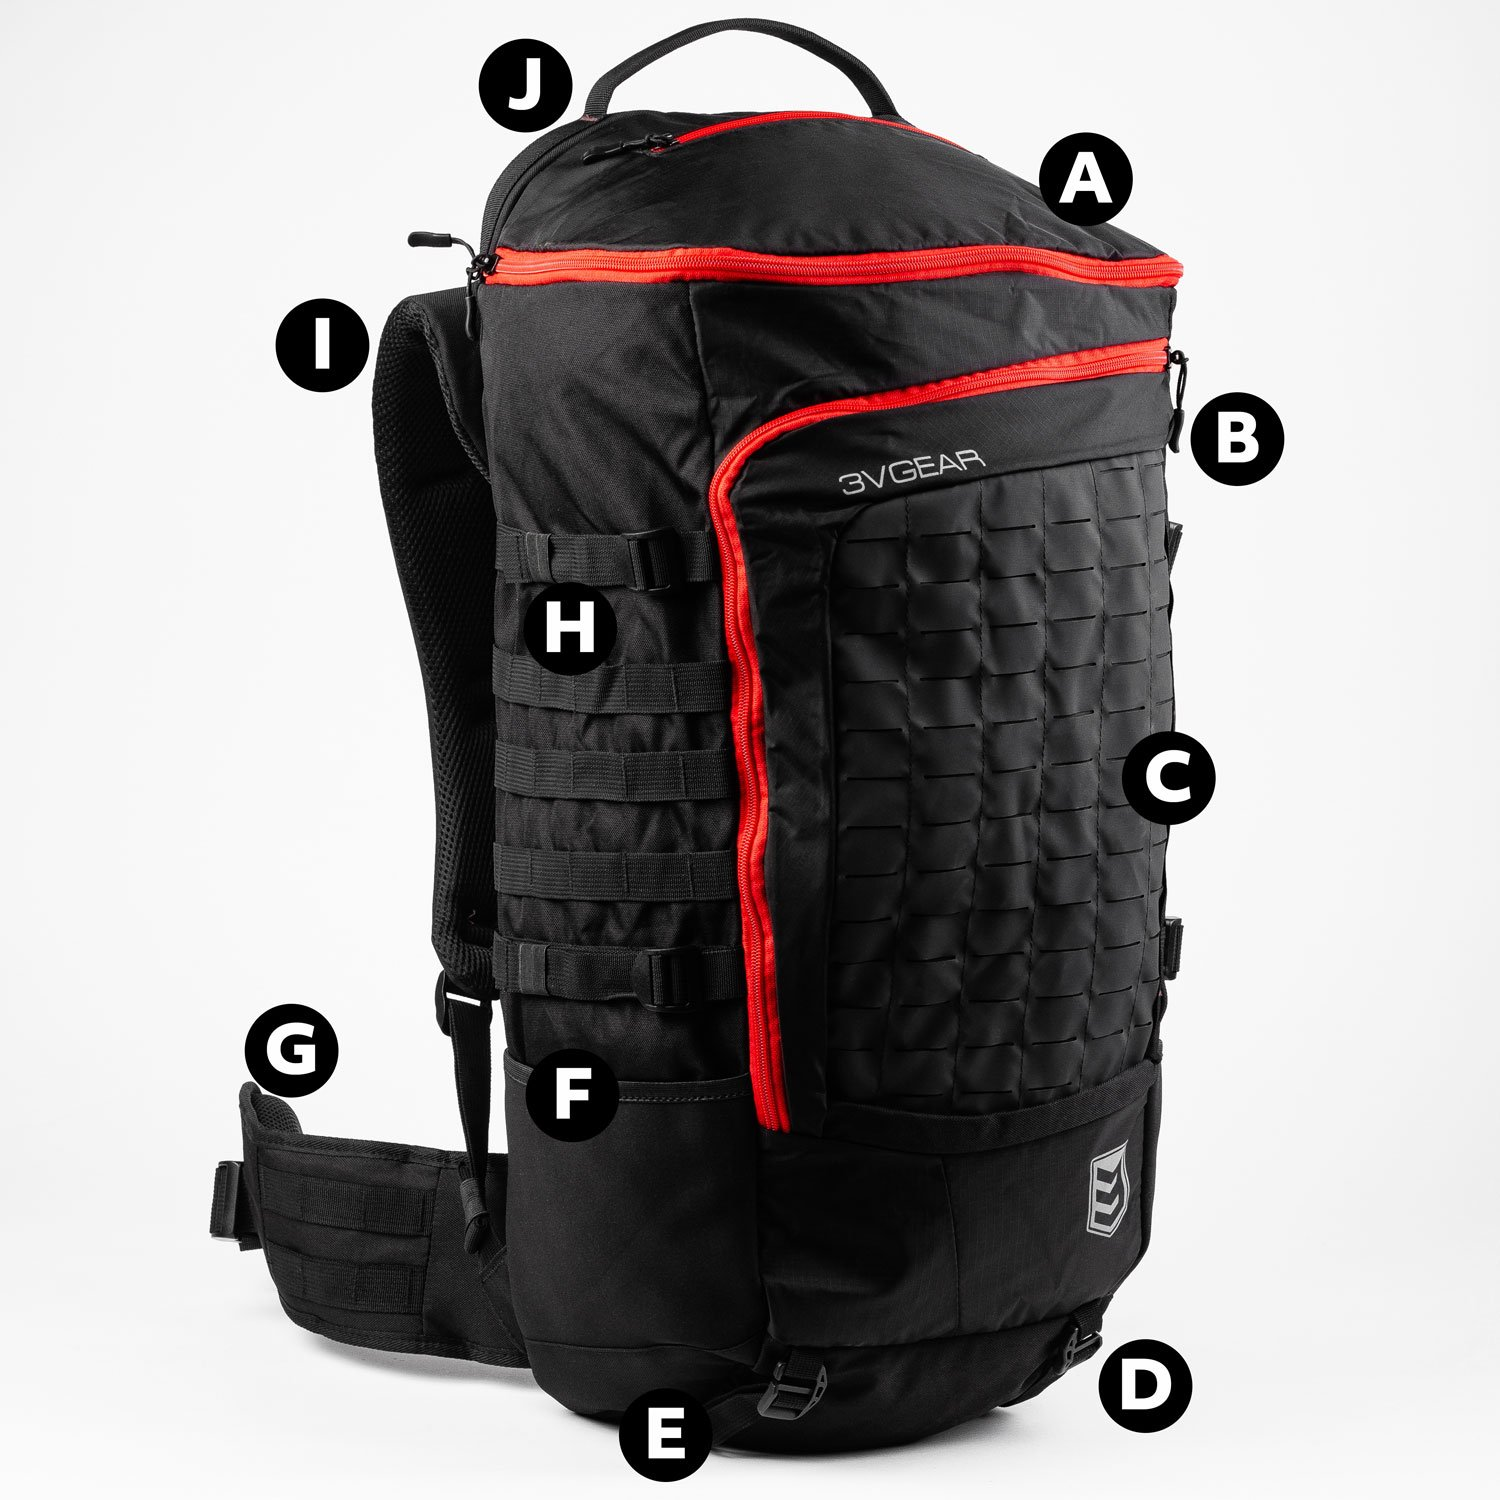 3v gear sovereign redline internal frame backpack